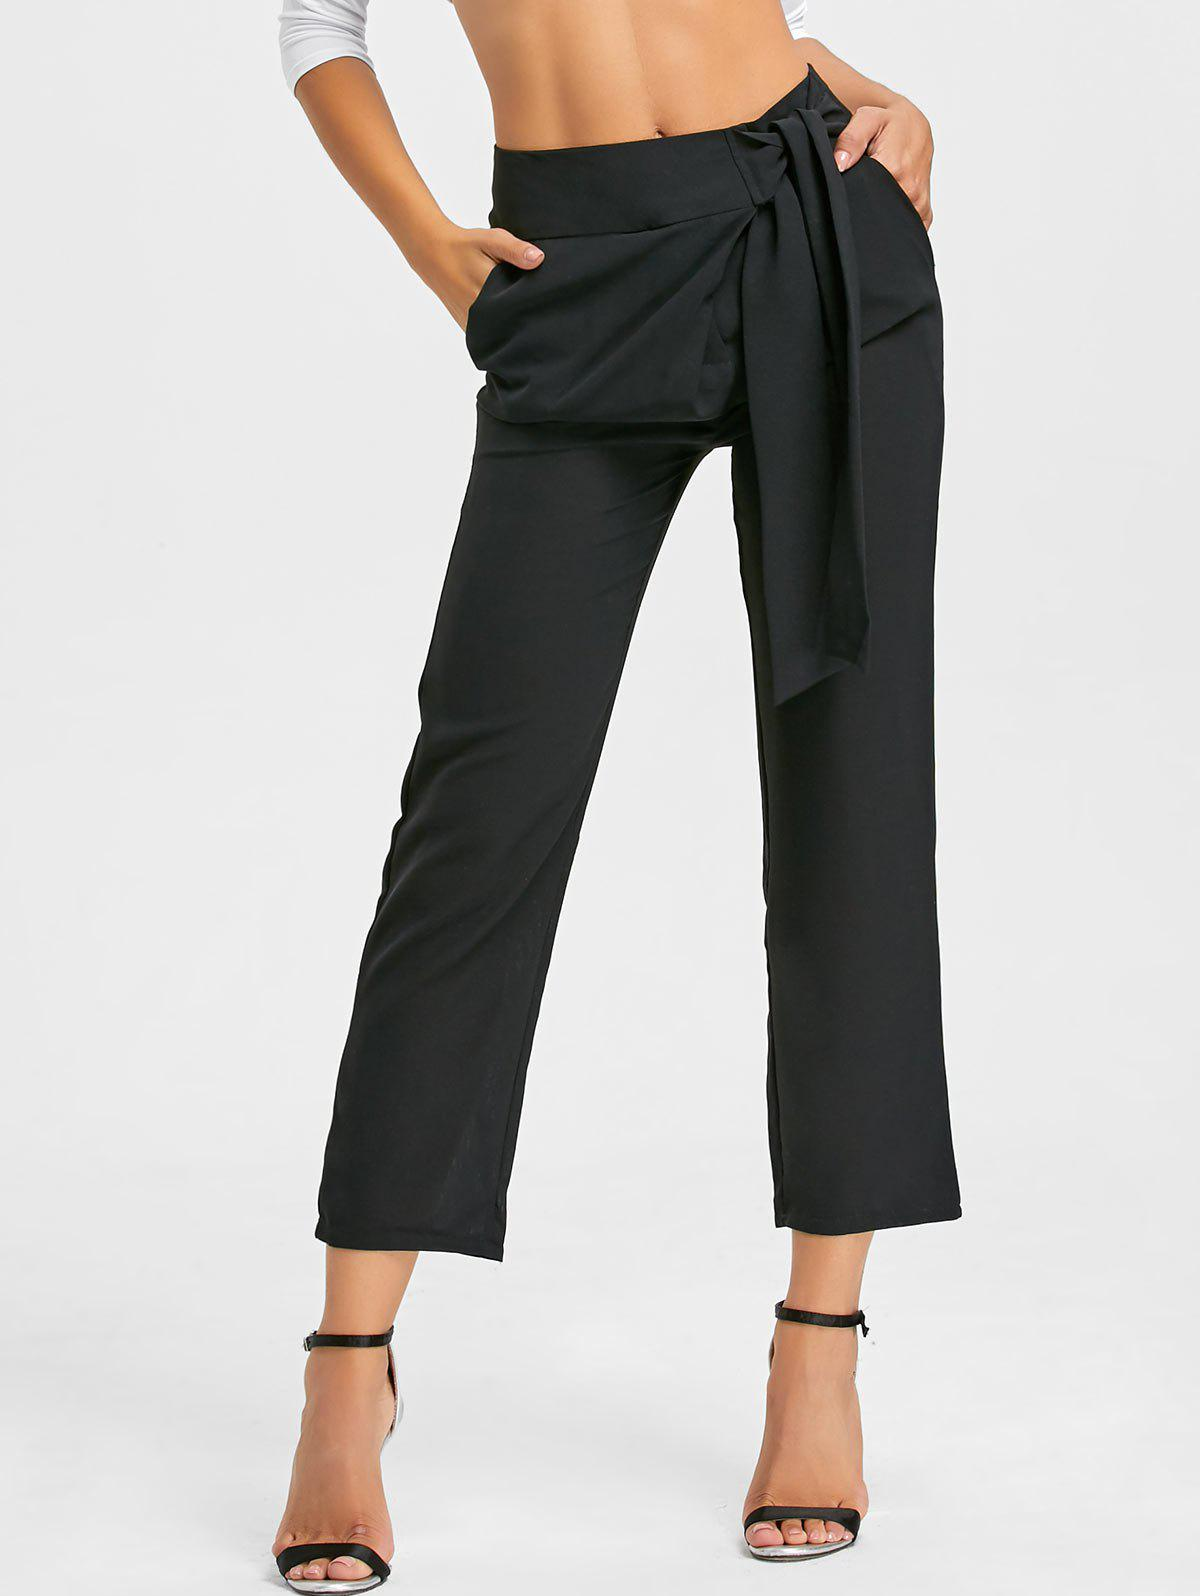 High Wasited Tie Up Pants - BLACK M